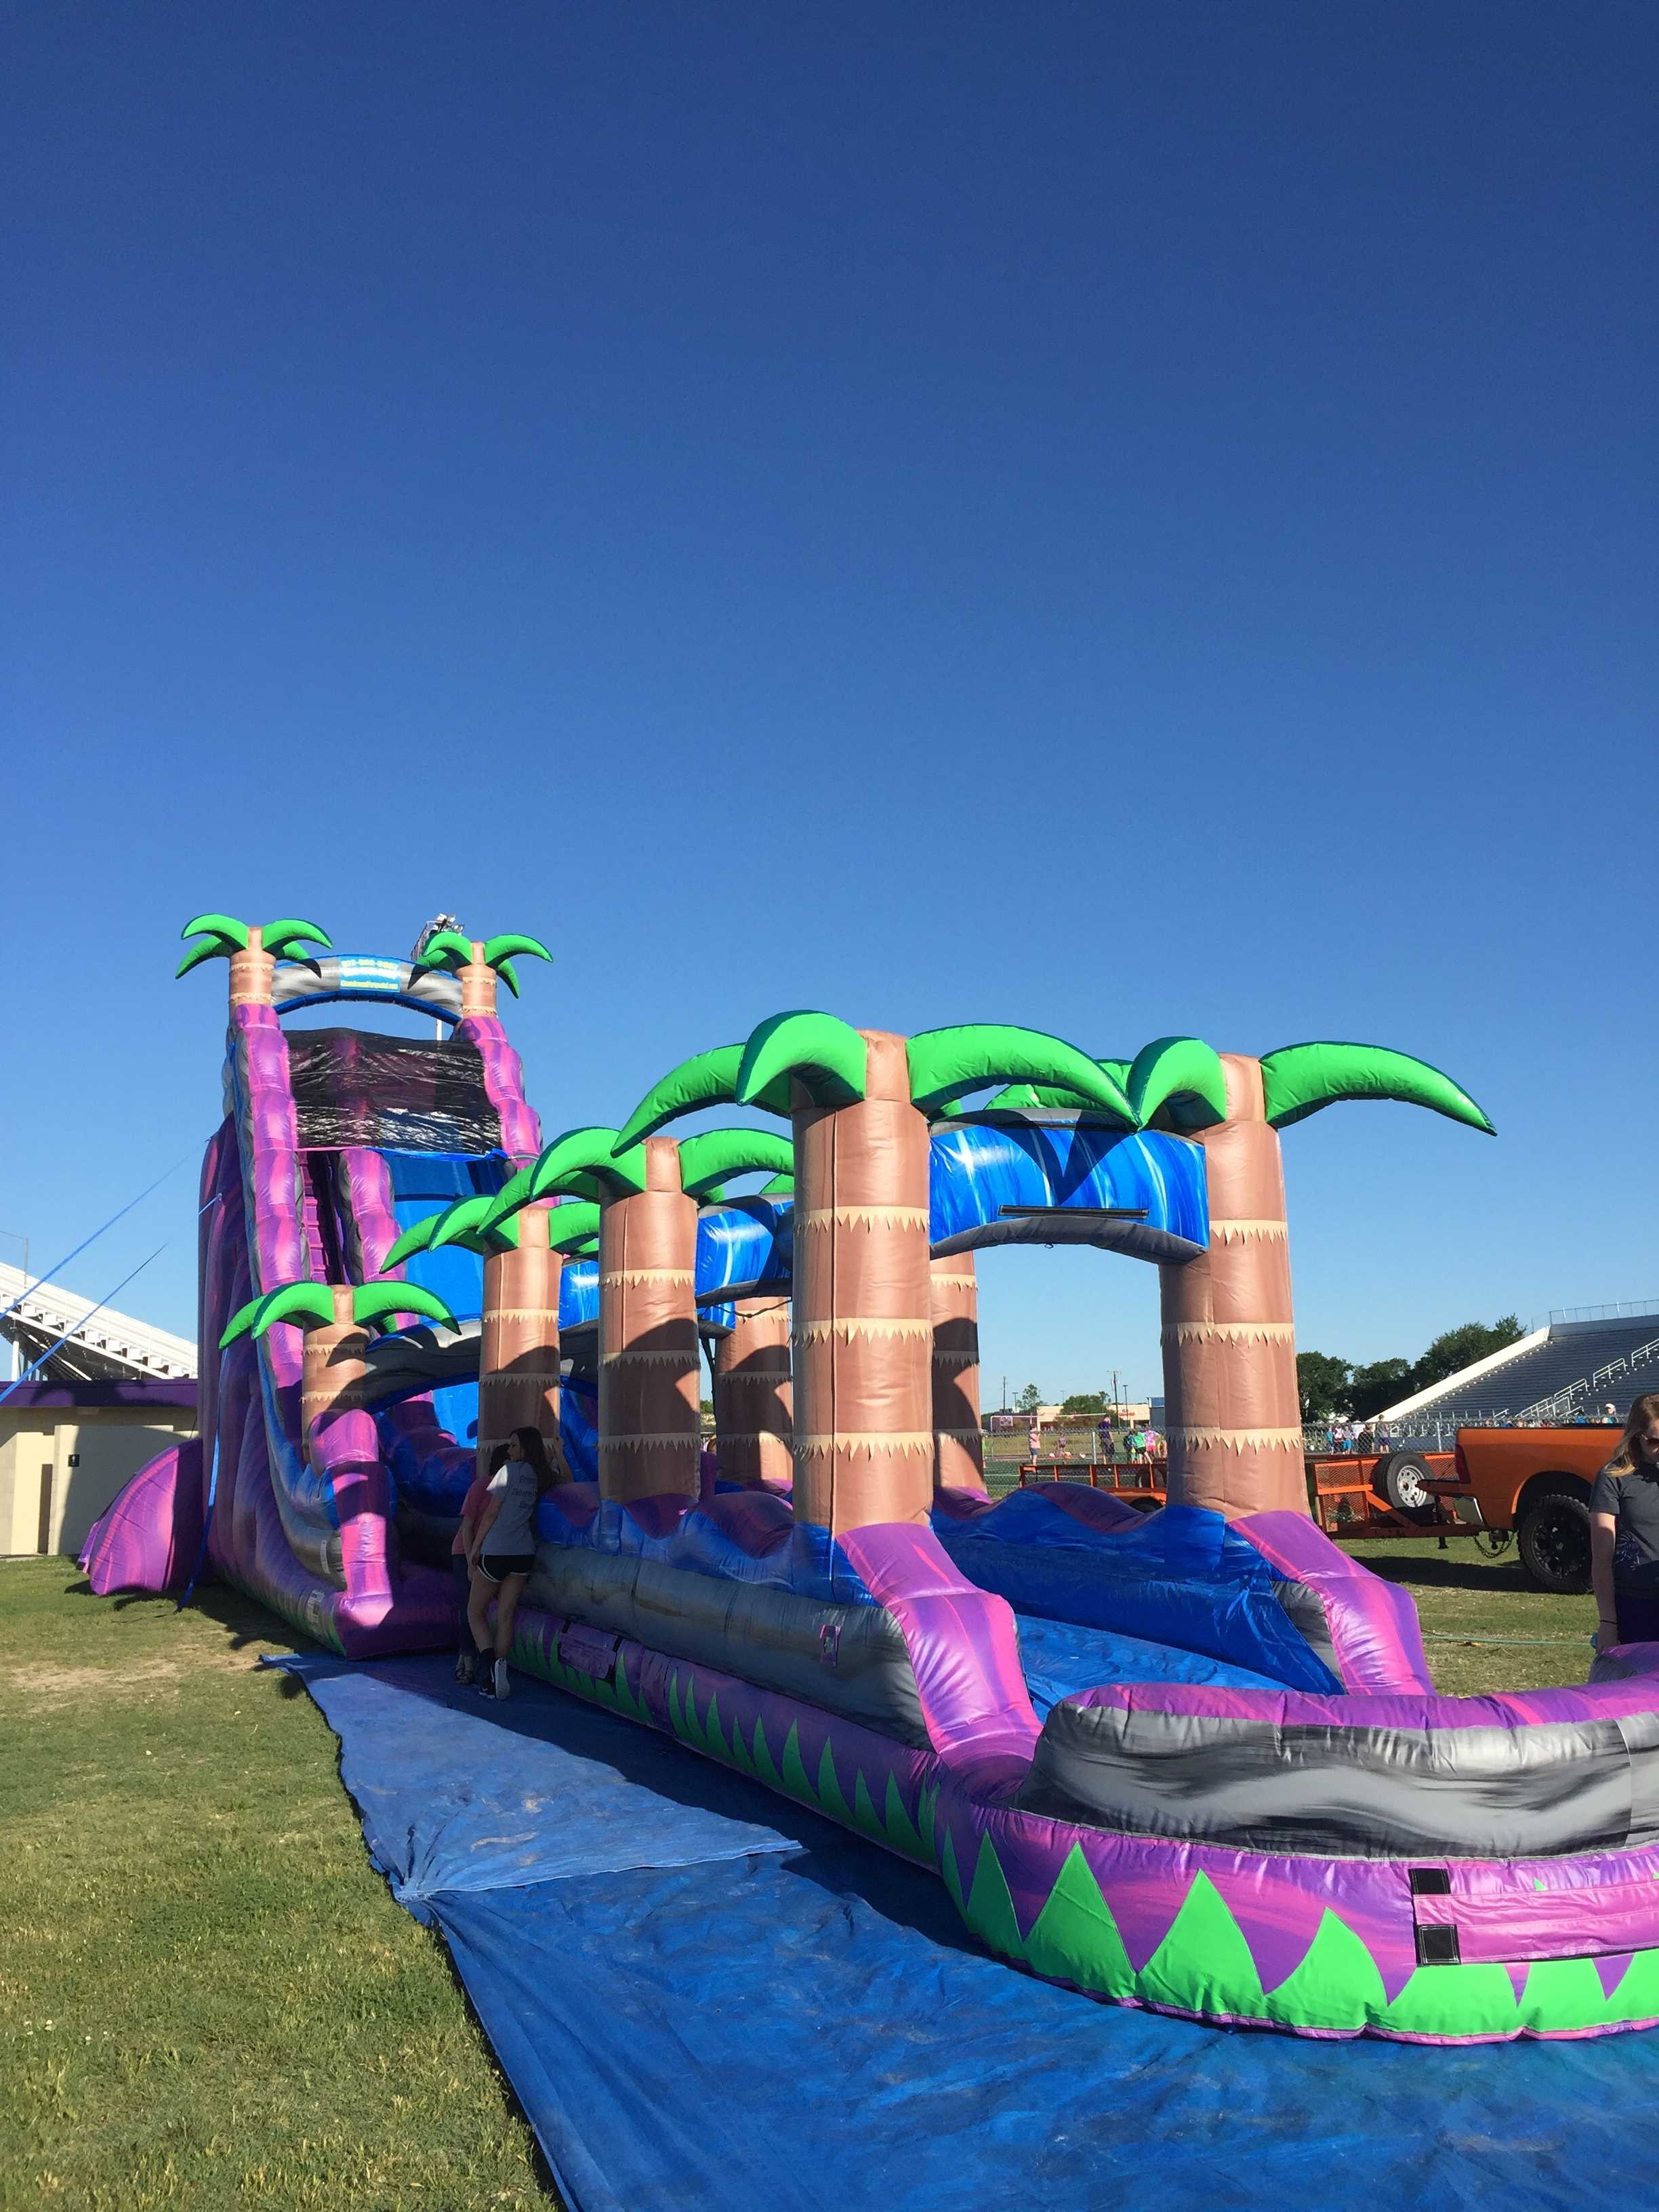 rent table and chairs for party vintage sling chair purple crush water slide | inflatable slides